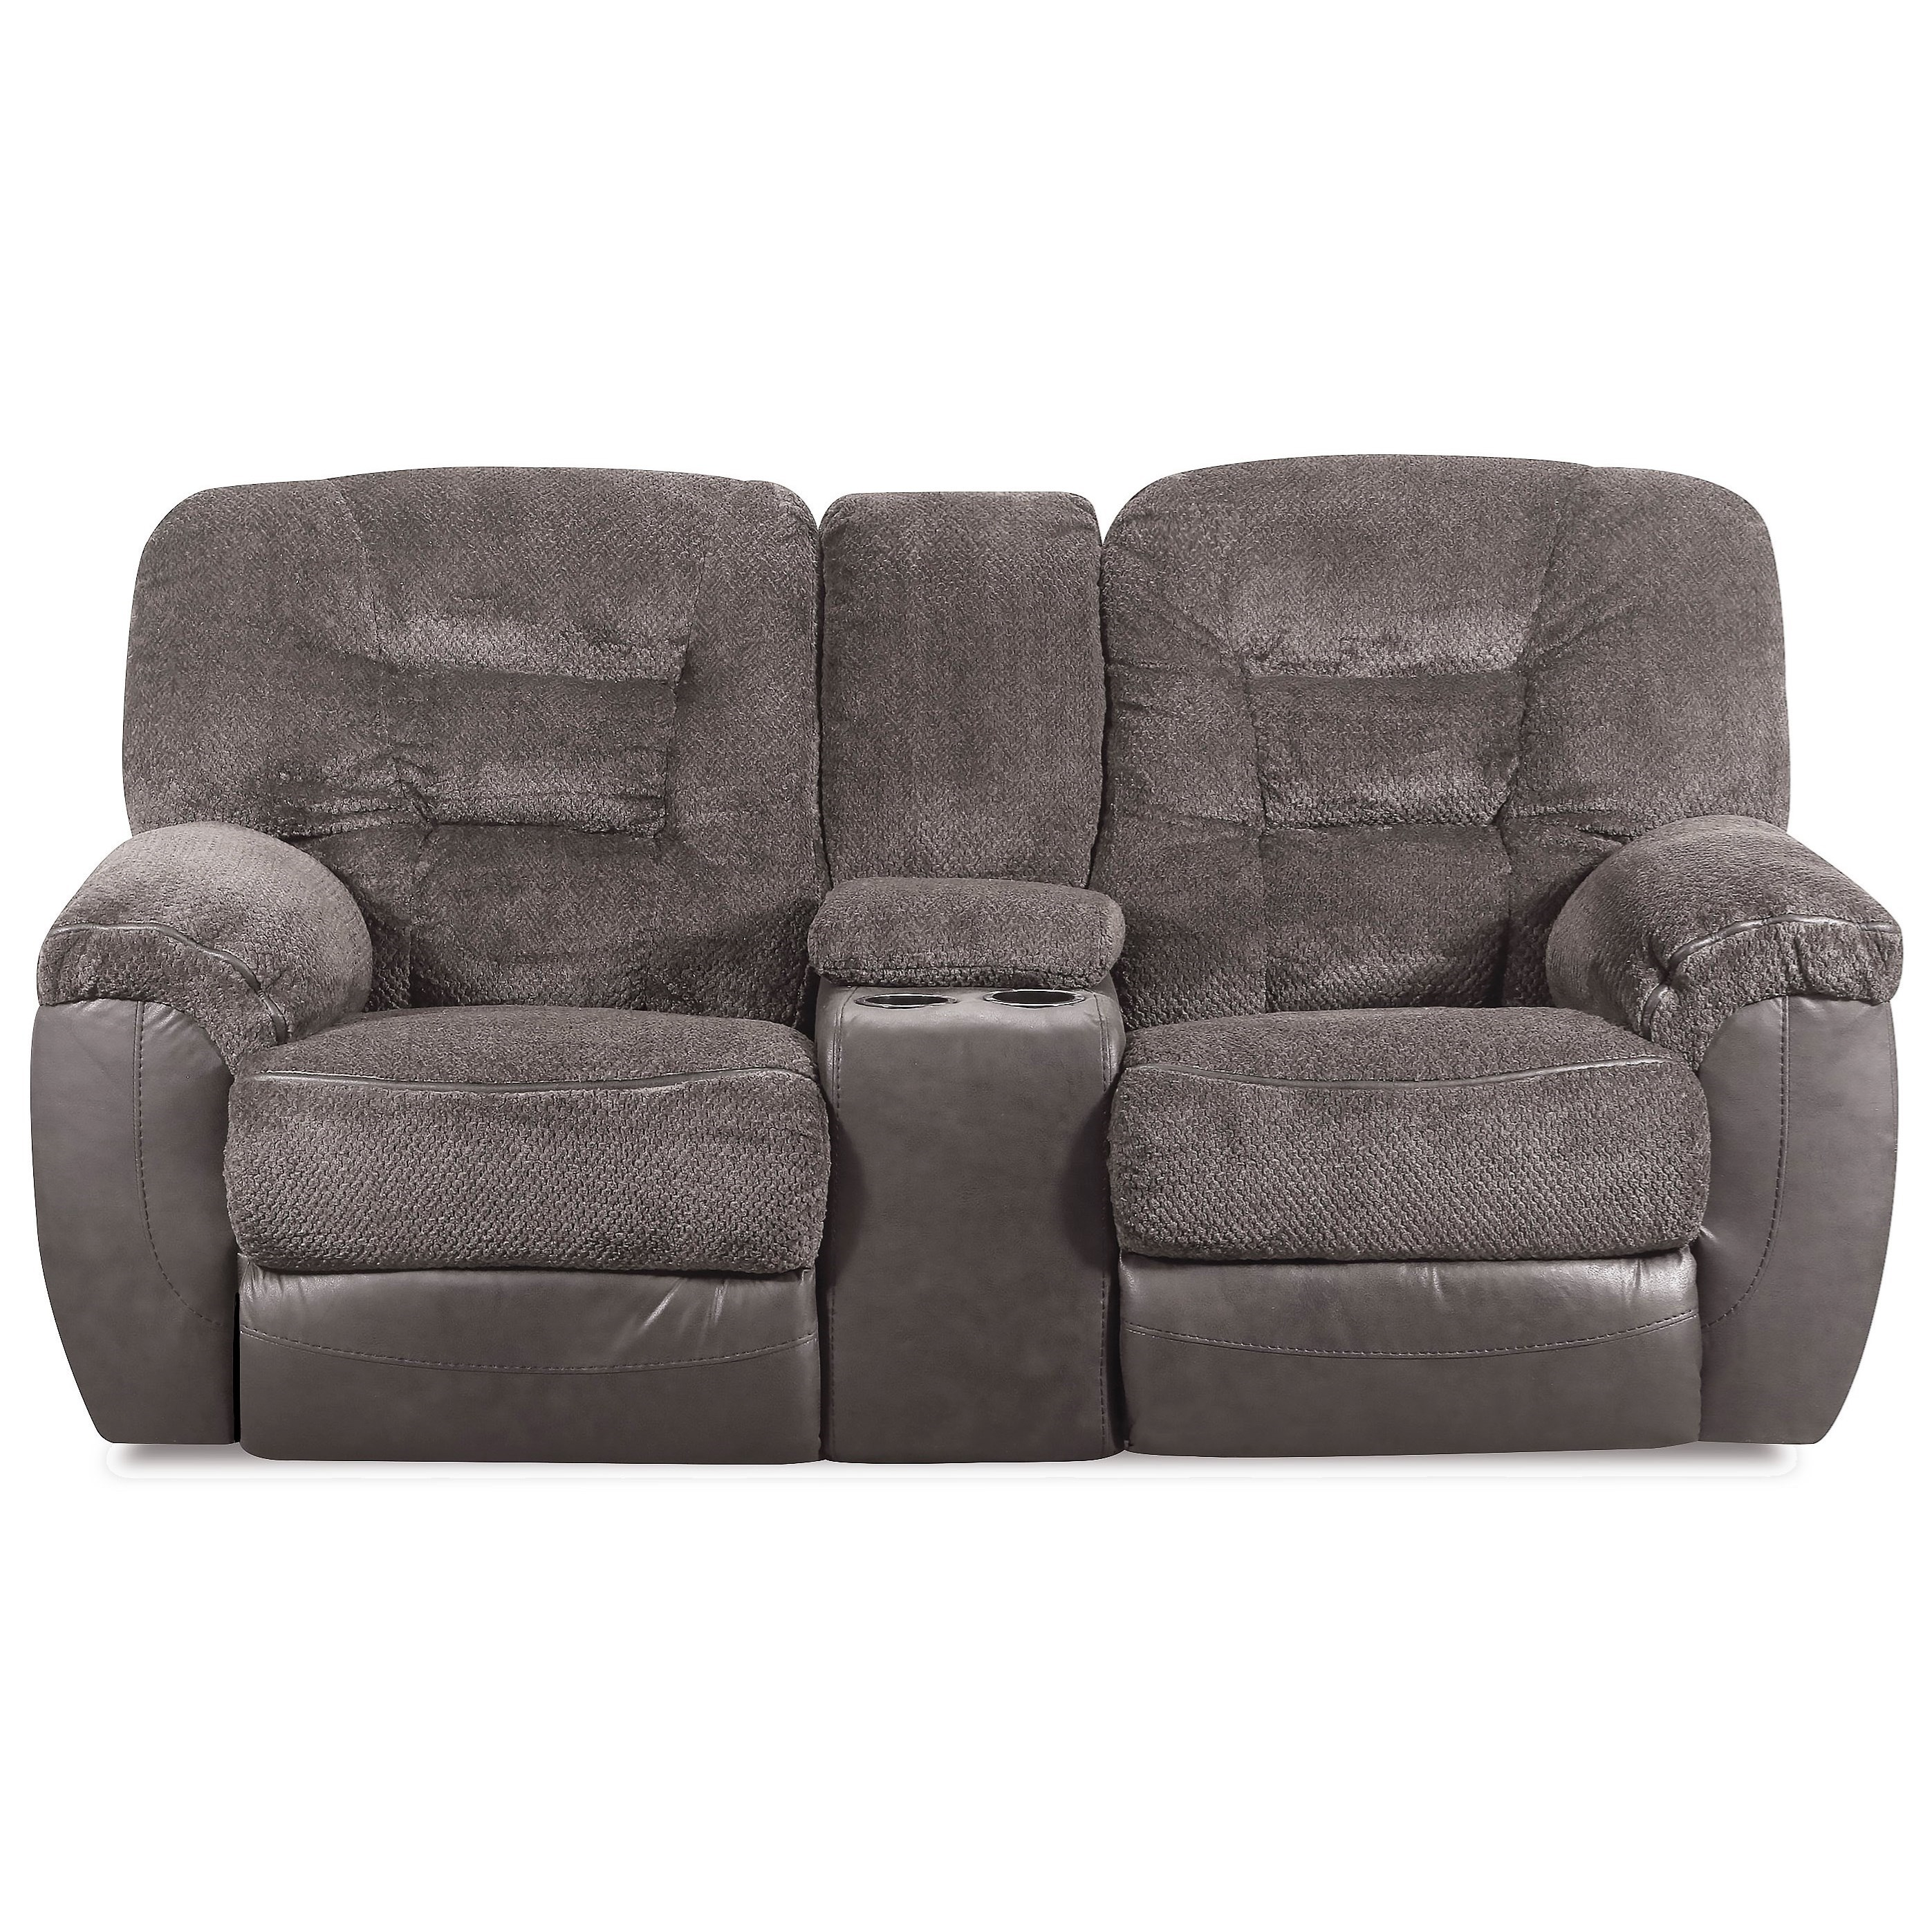 50439BR Reclining Console Loveseat by United Furniture Industries at Bullard Furniture